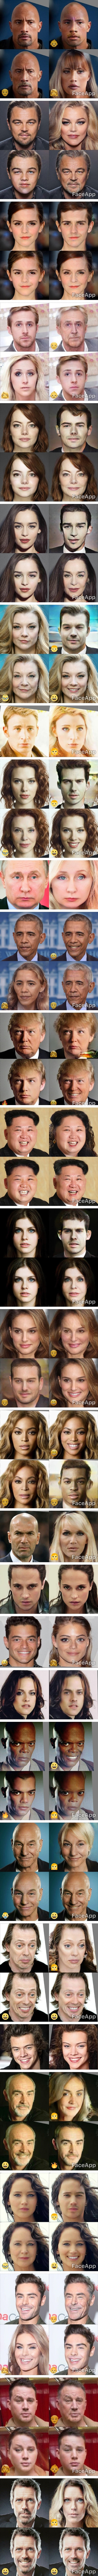 Faceapp with some celebs